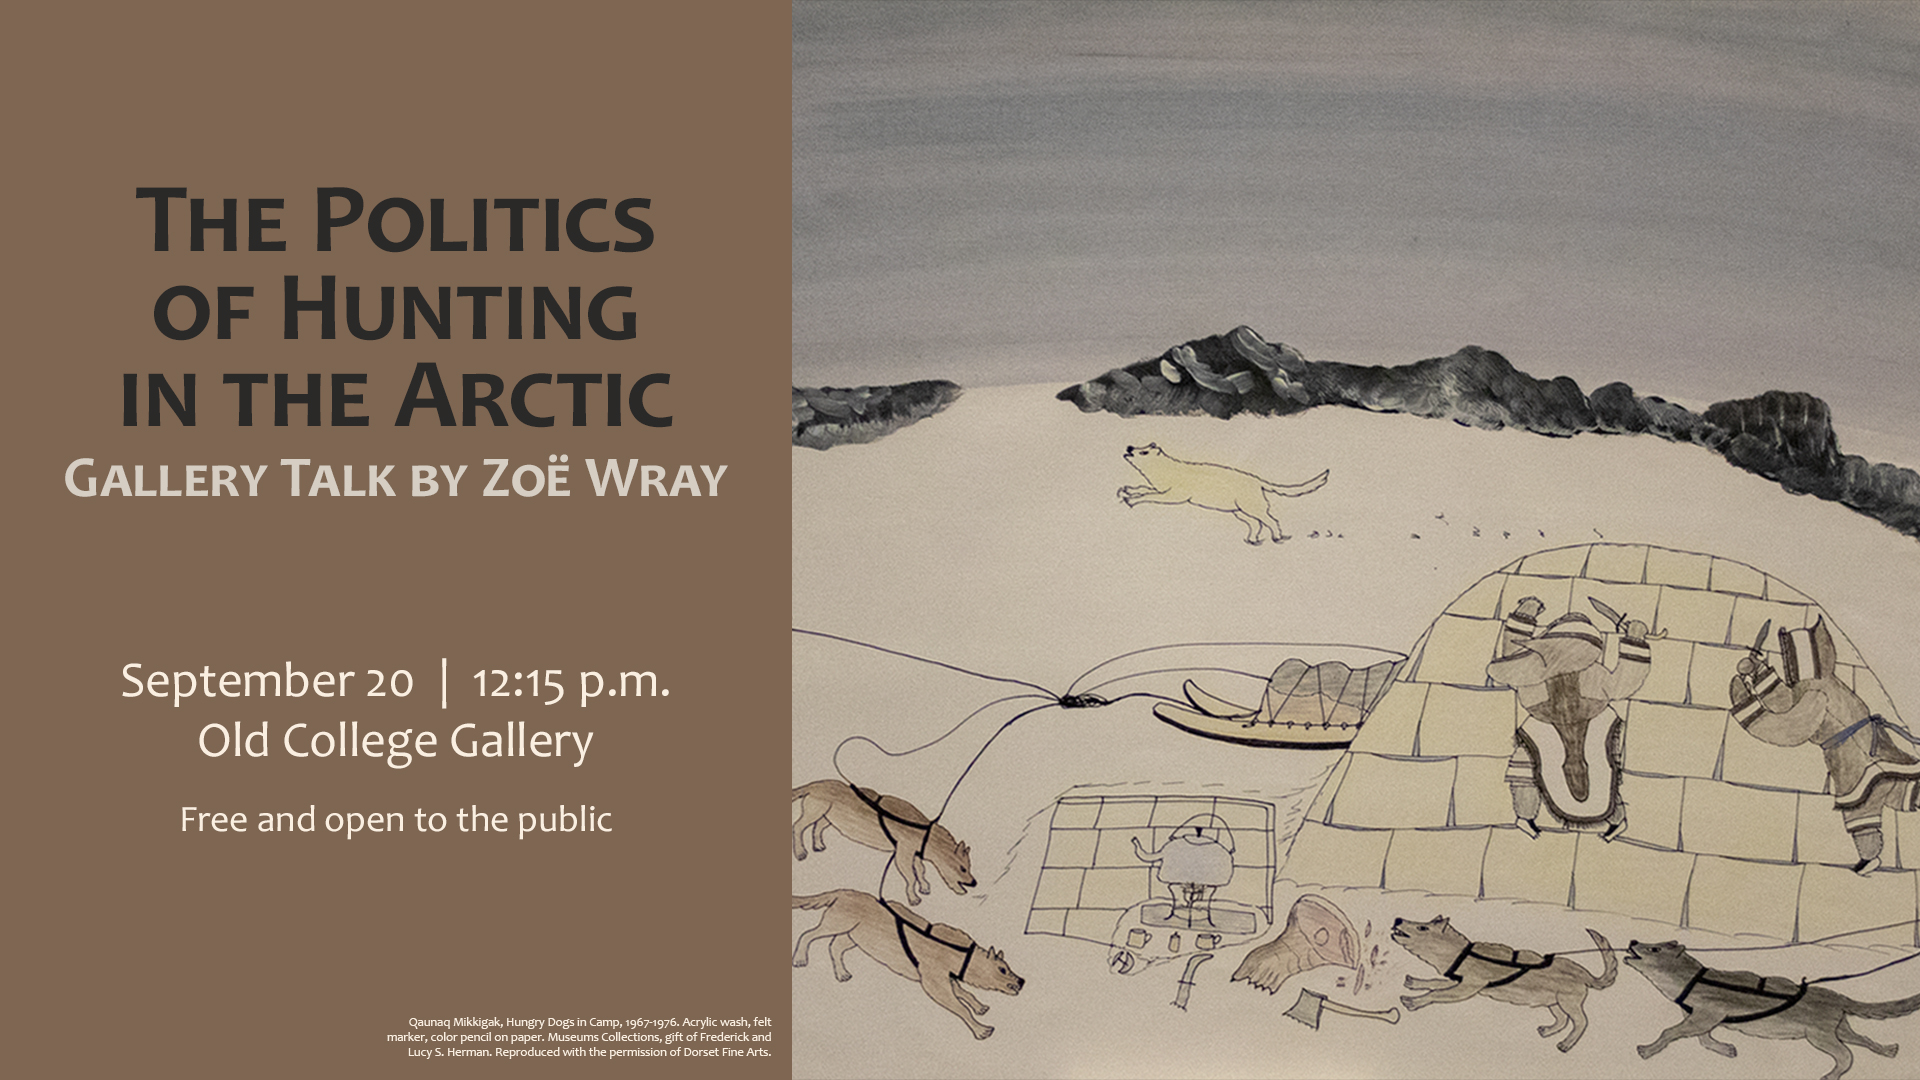 Gallery Talk: The Politics of Hunting in the Arctic